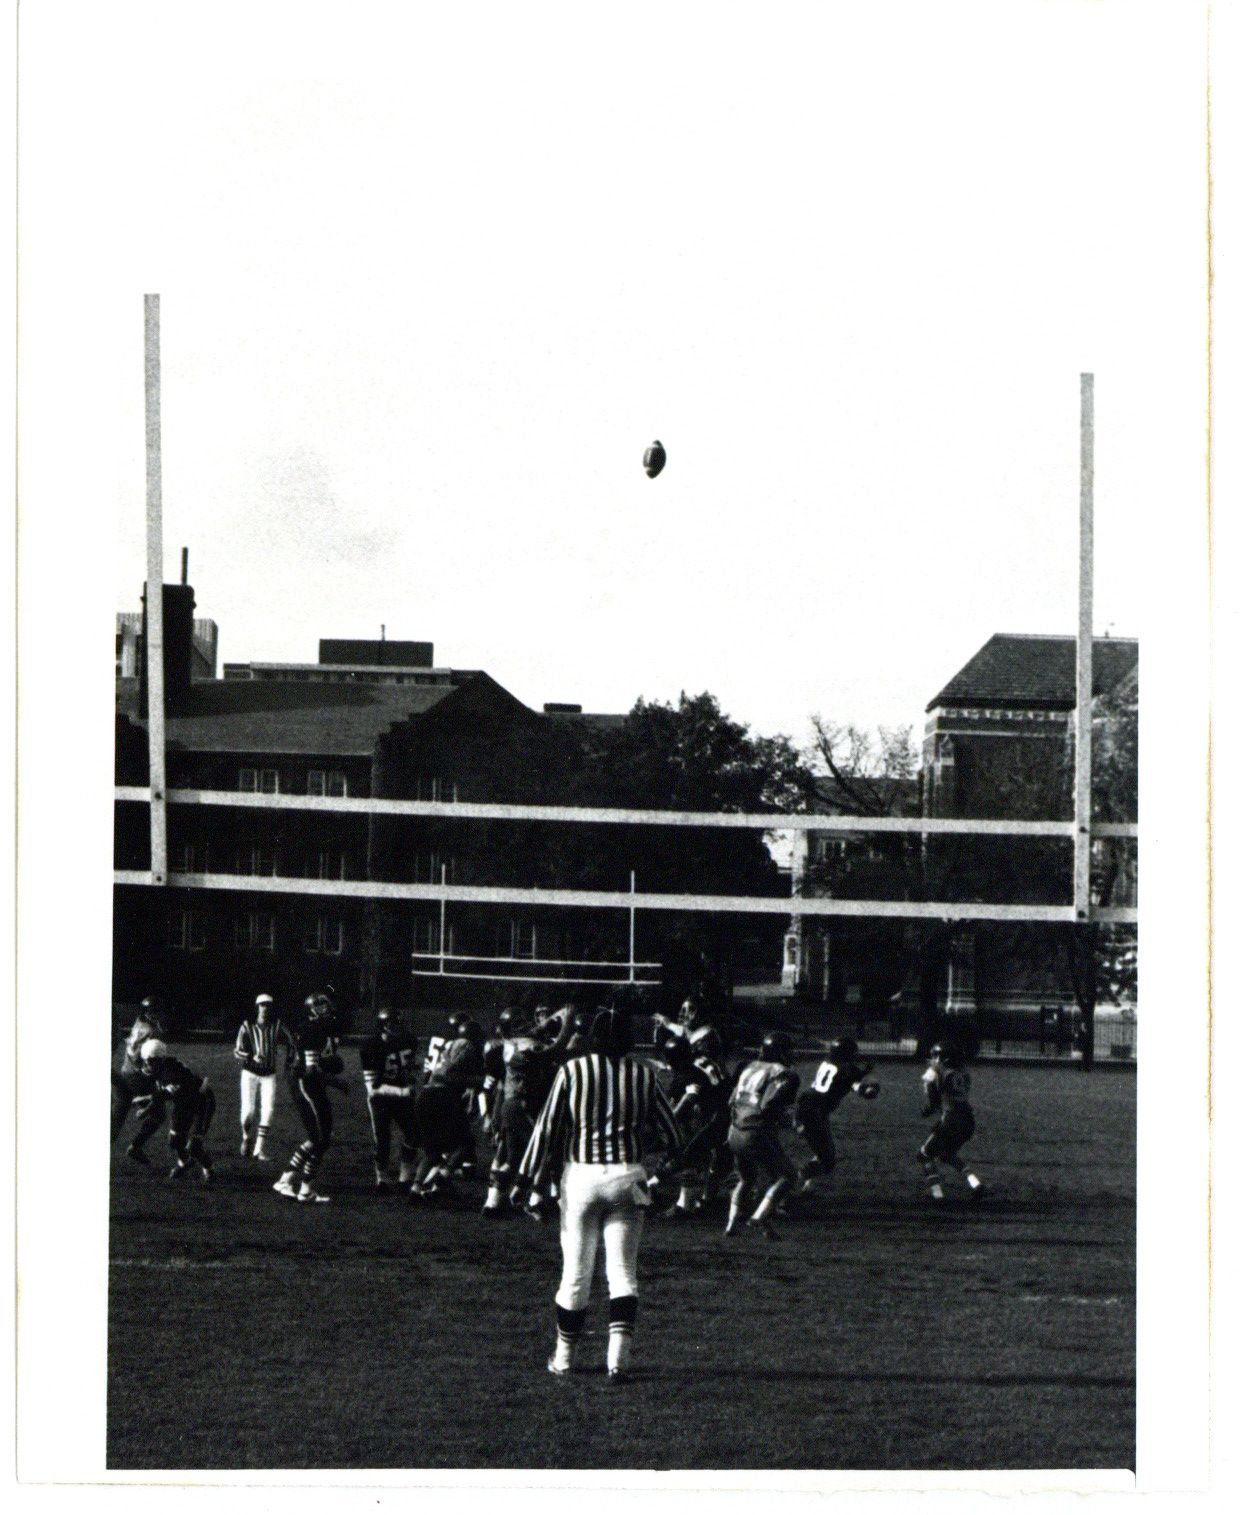 Image depicts a black and white photo of a football game on campus